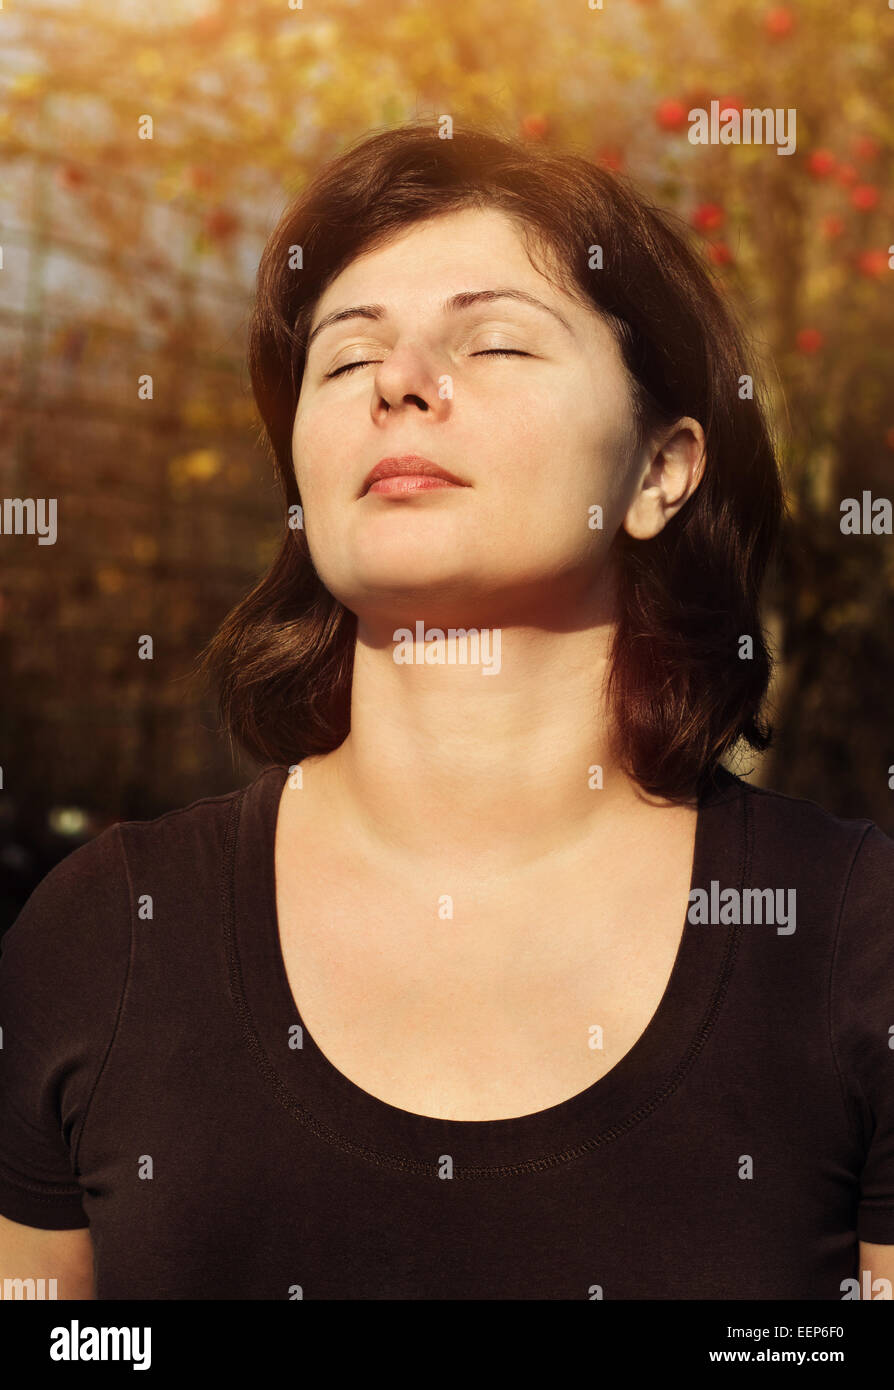 Close up portrait of beautiful woman is smiling with closed eyes over sunlight, meditation outdoor - Stock Image